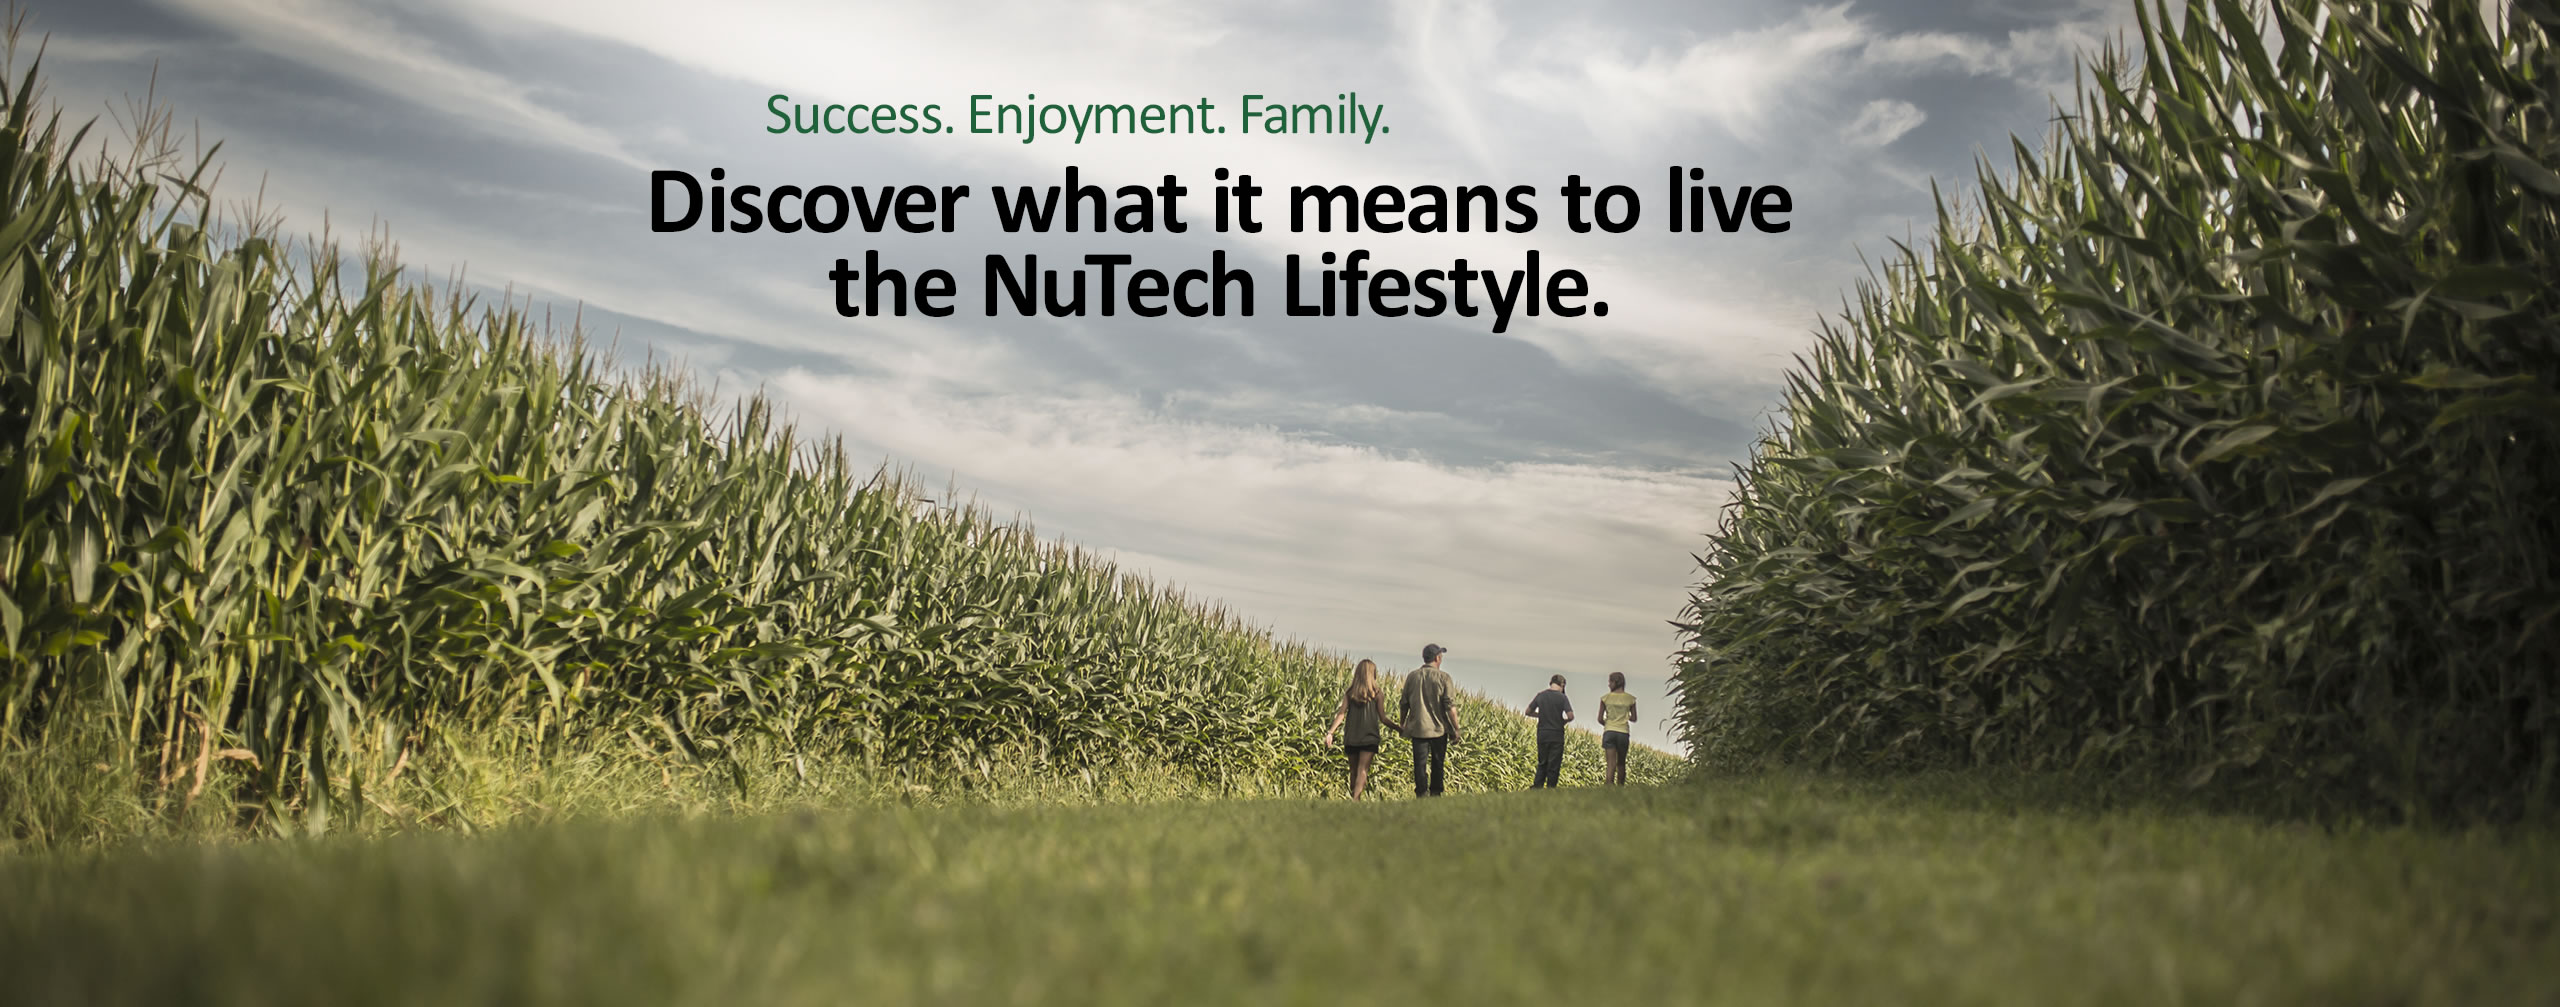 The NuTech Lifestyle